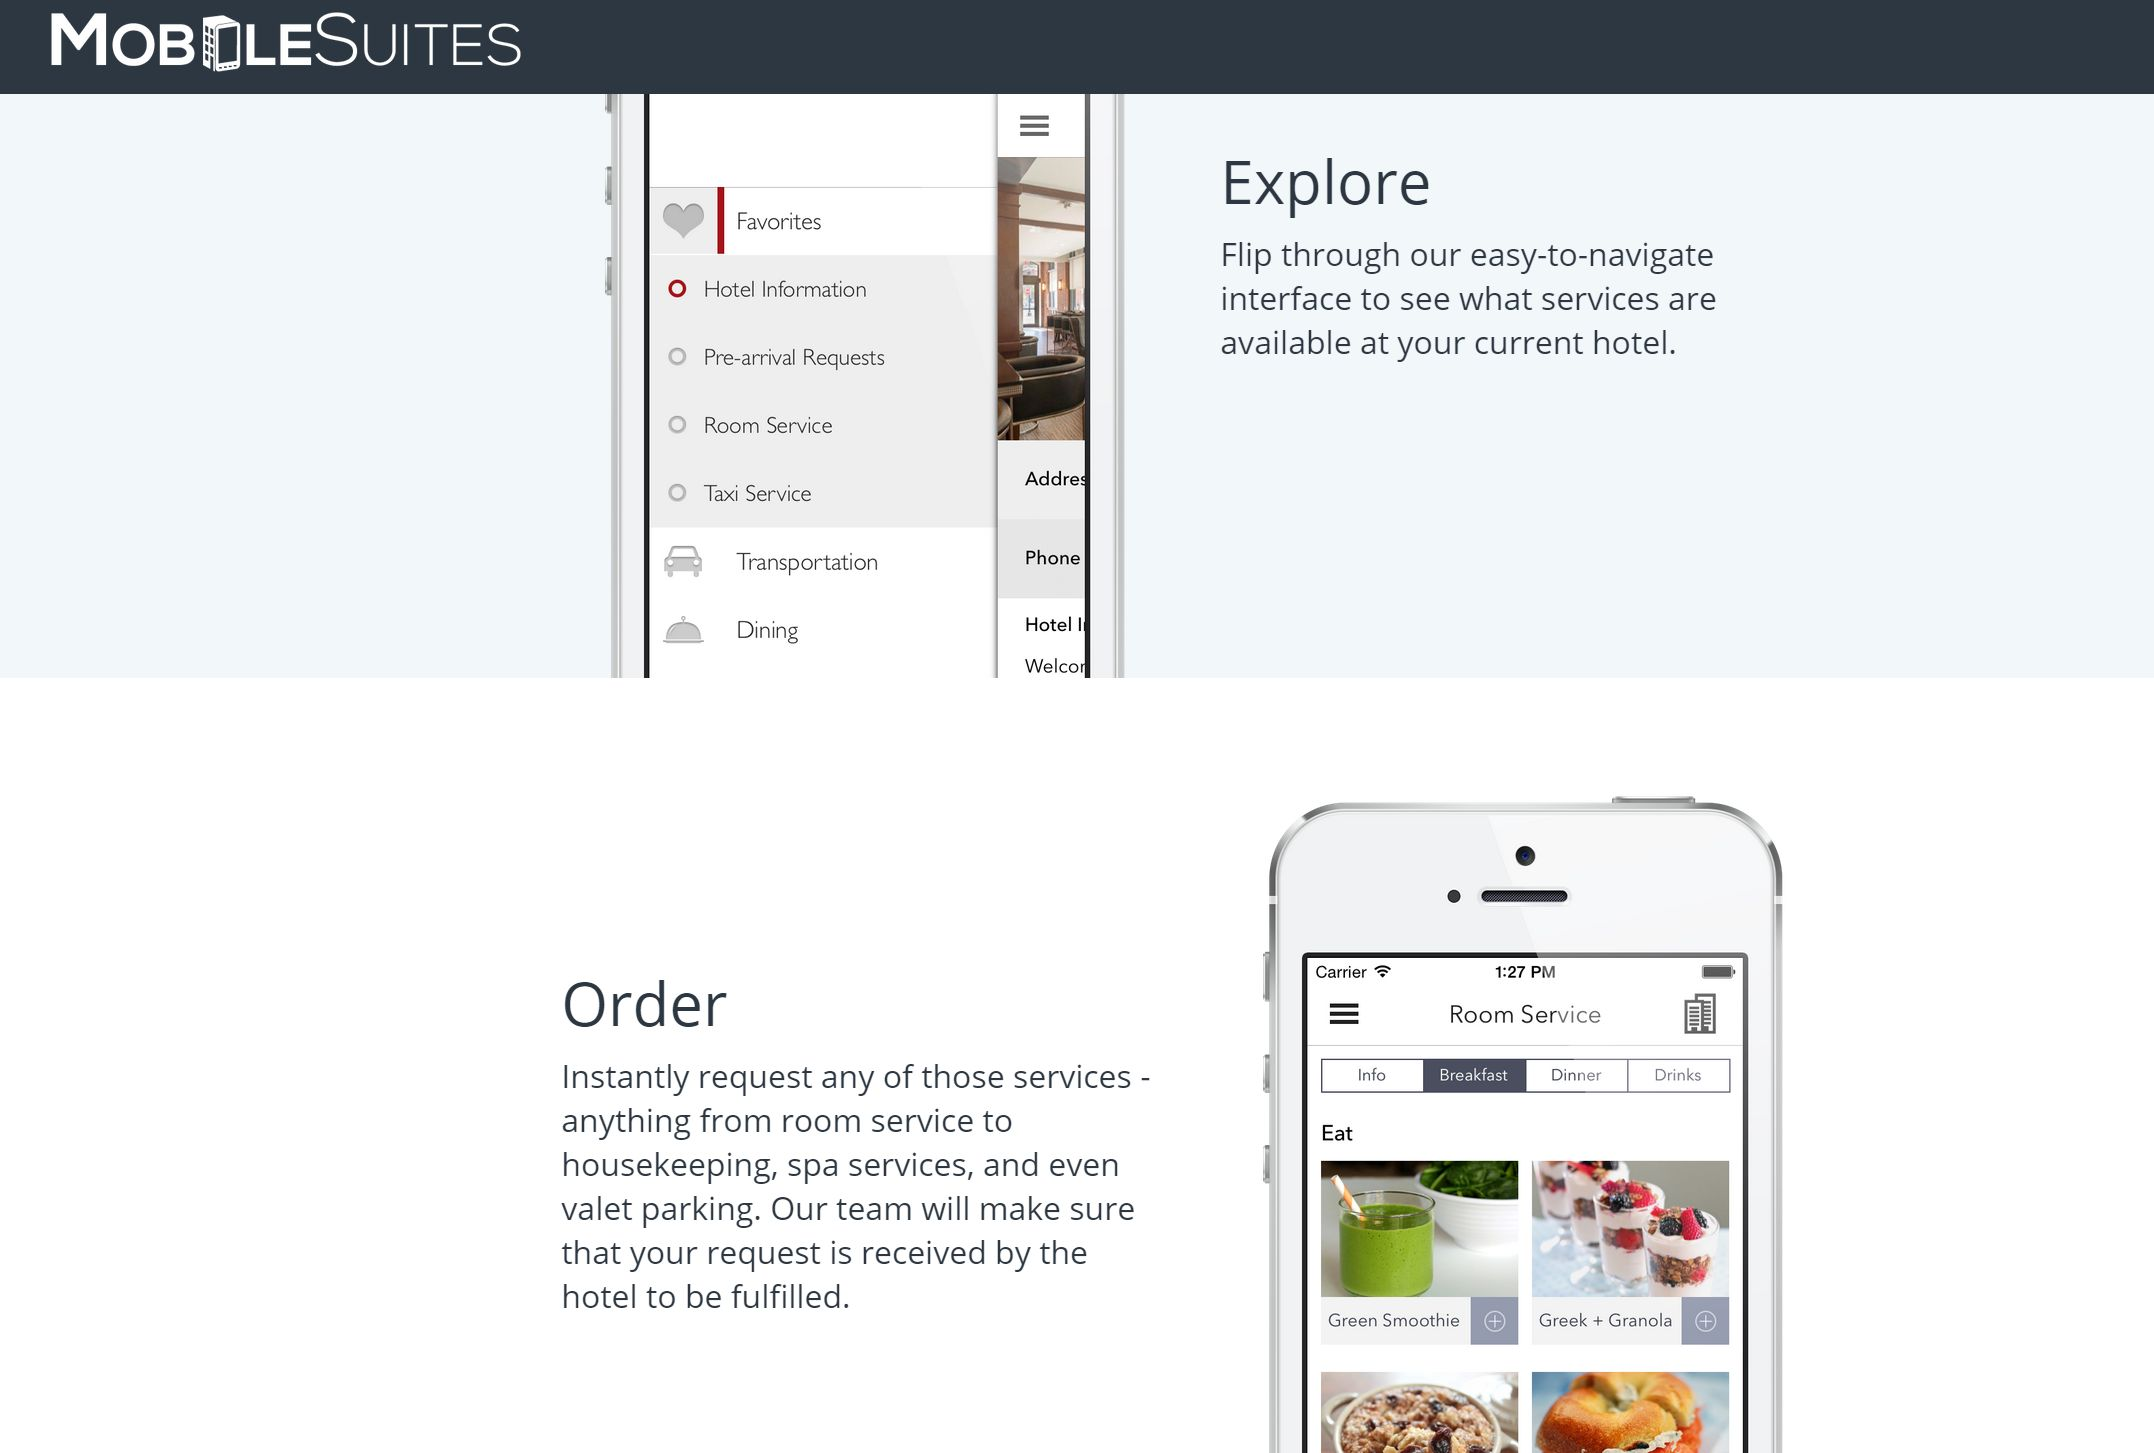 Mobile Suites – A new way of using guest services at hotels + Give Away